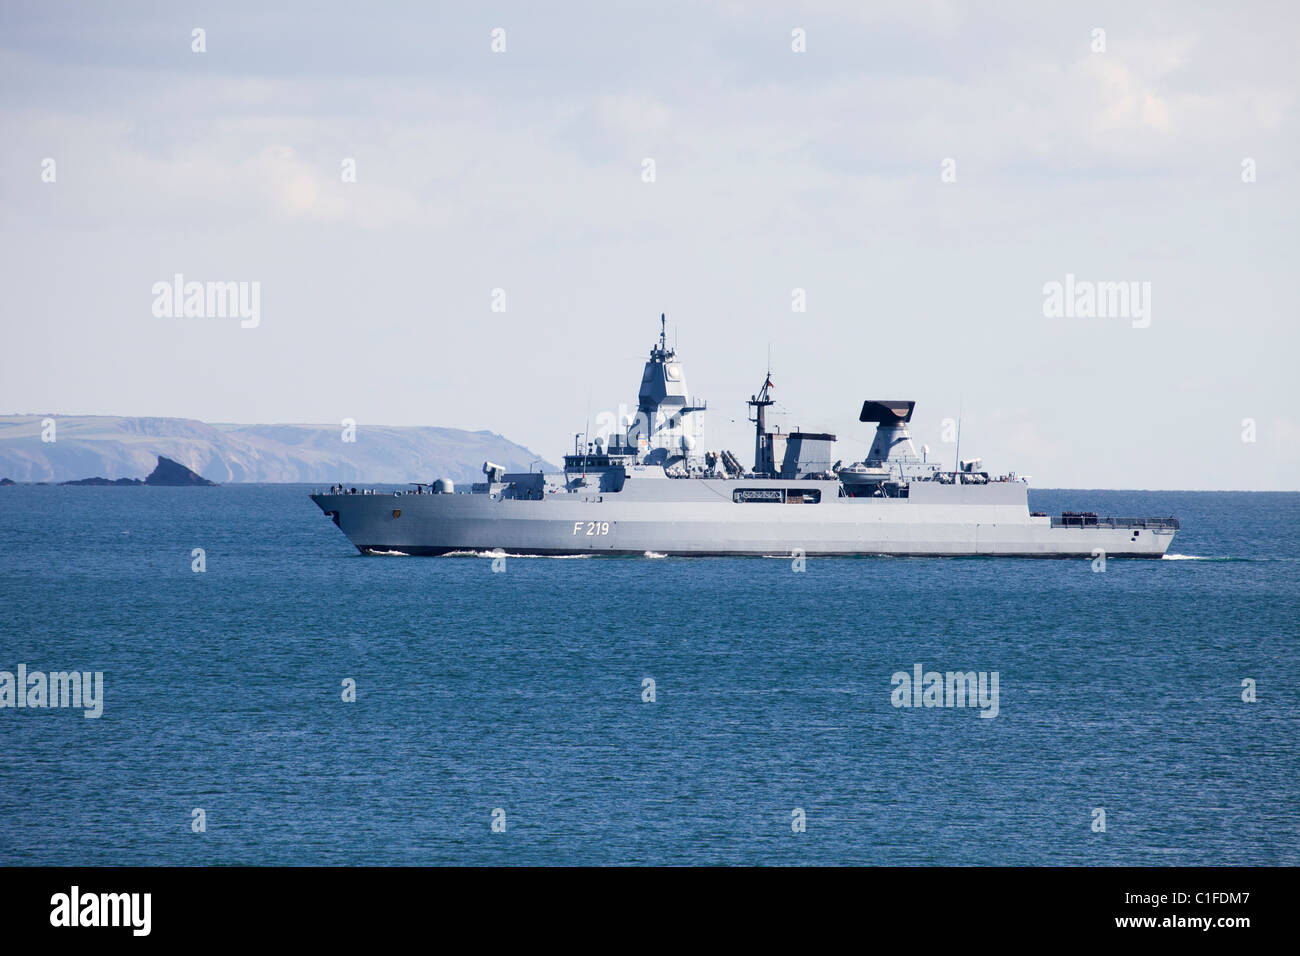 Frigate F129 Germany Navy entering Plymouth Sound - Stock Image